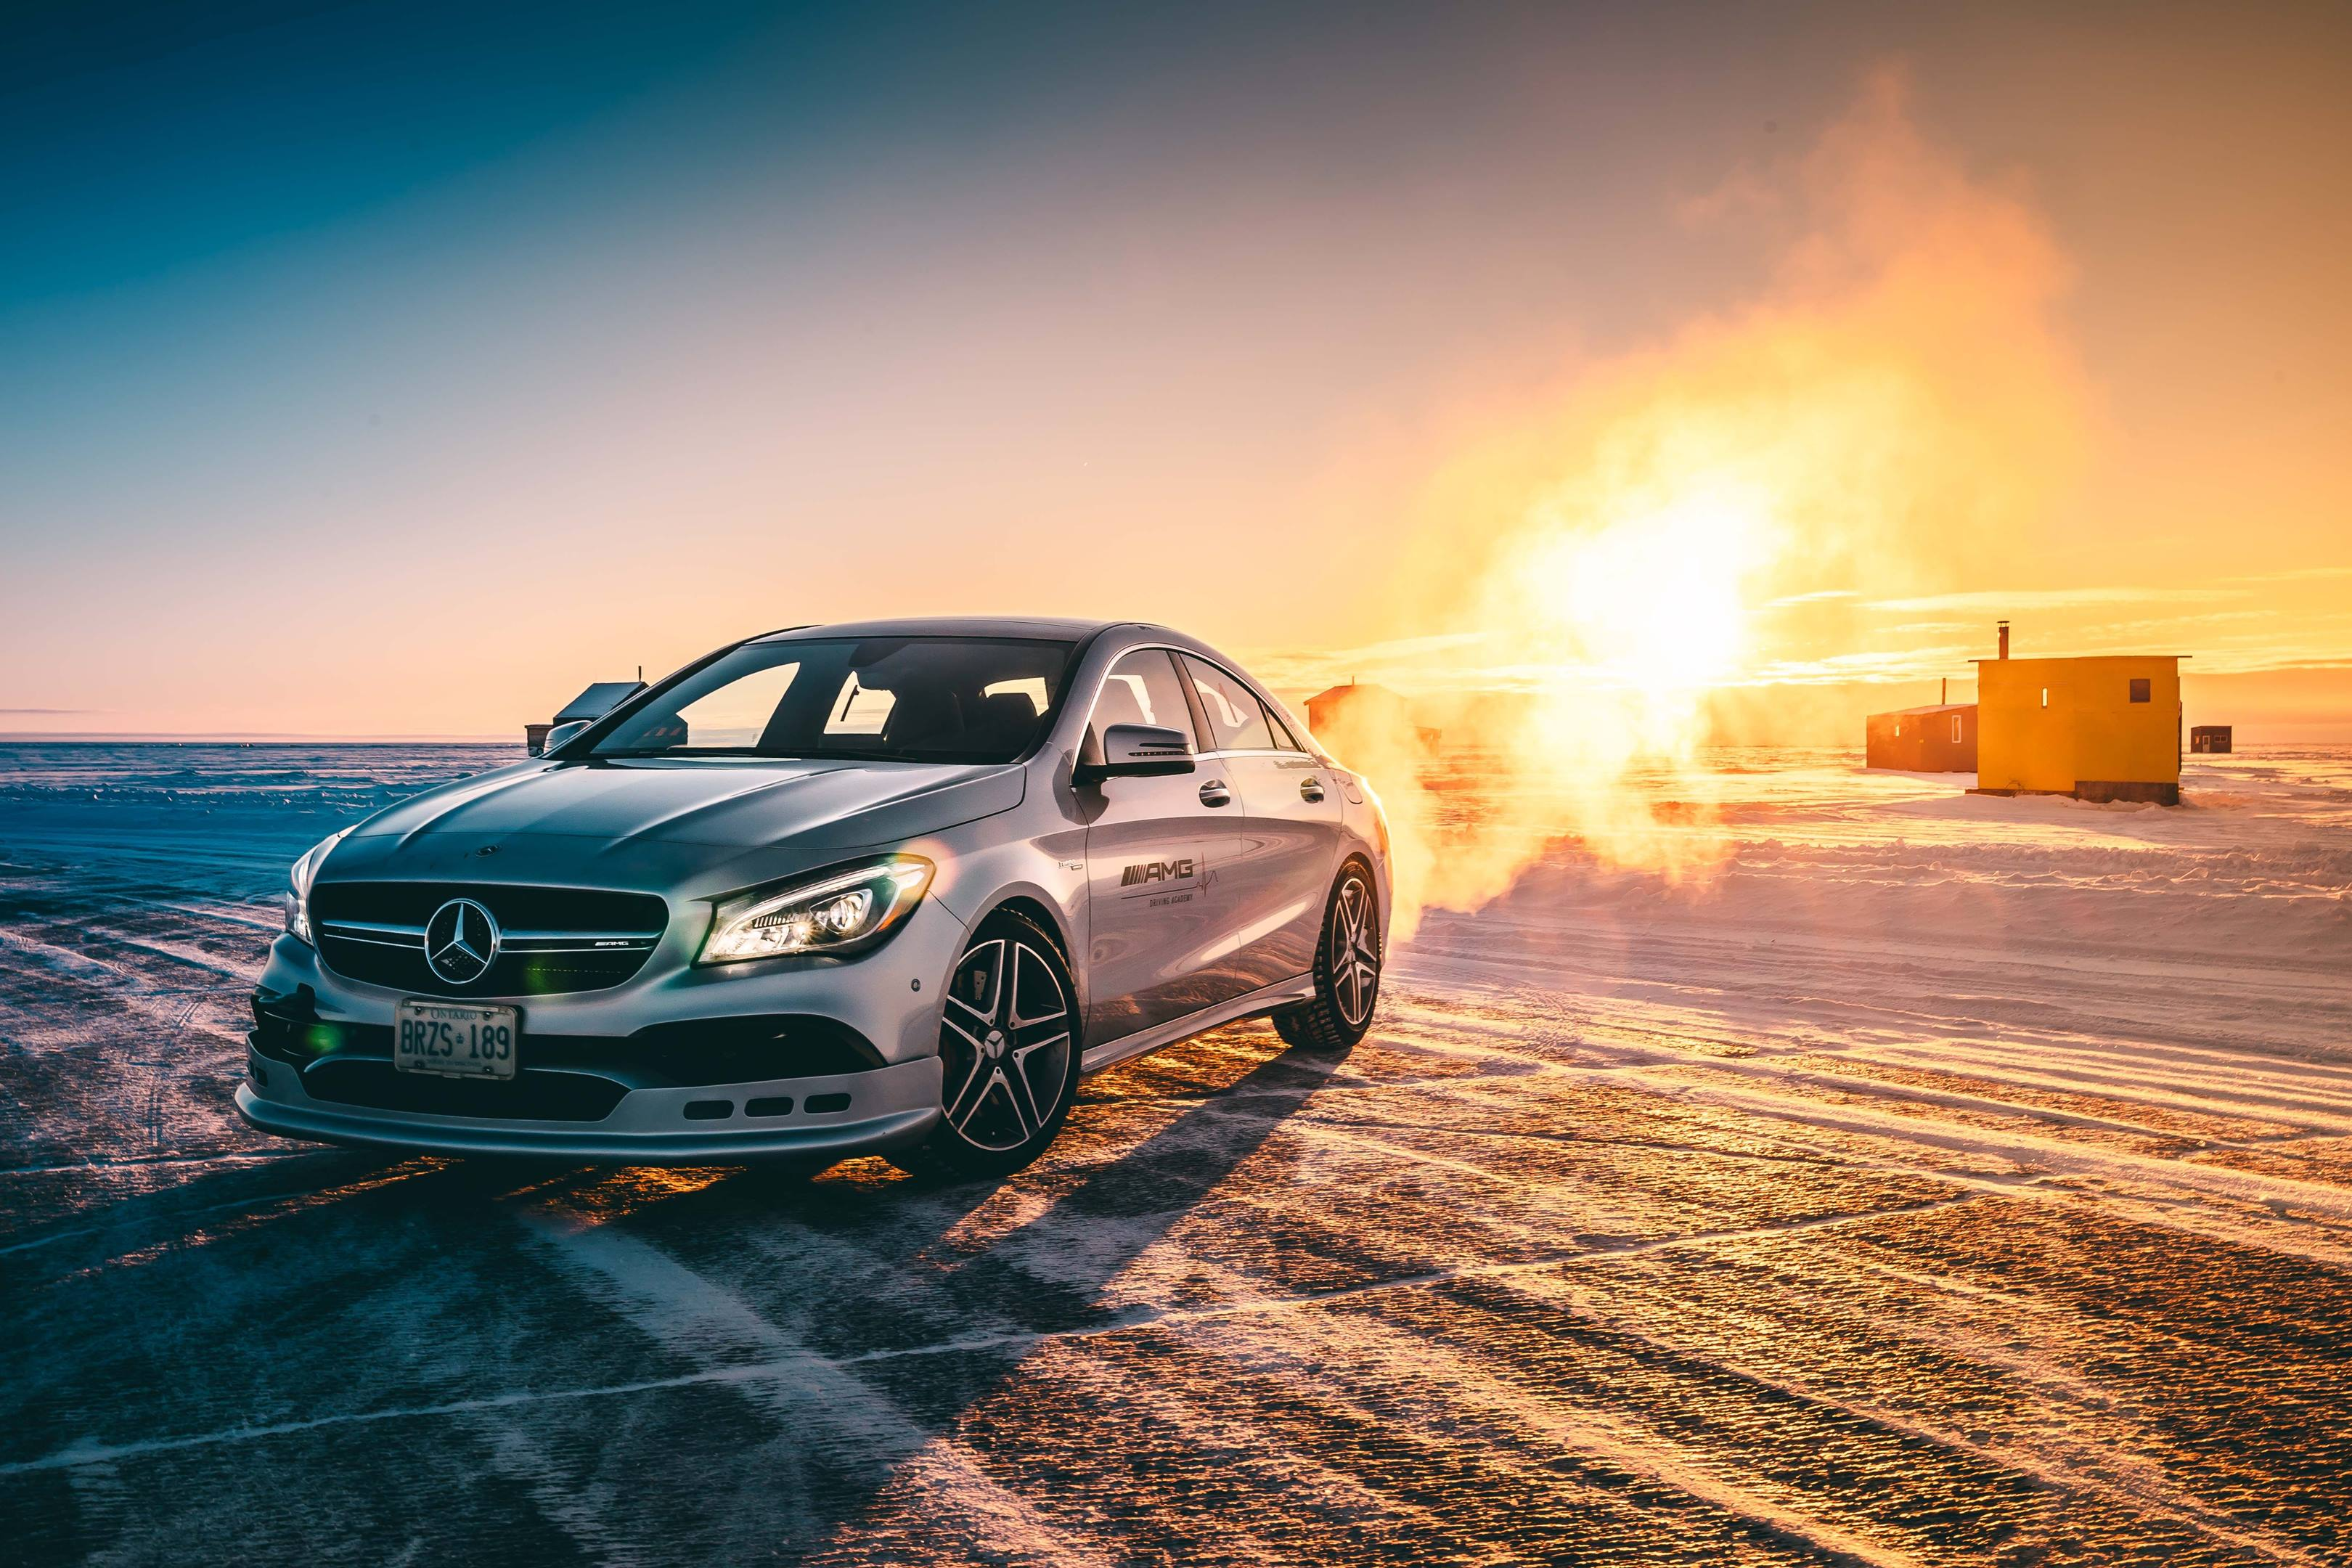 Mercedes-AMG winter driving school at sunset